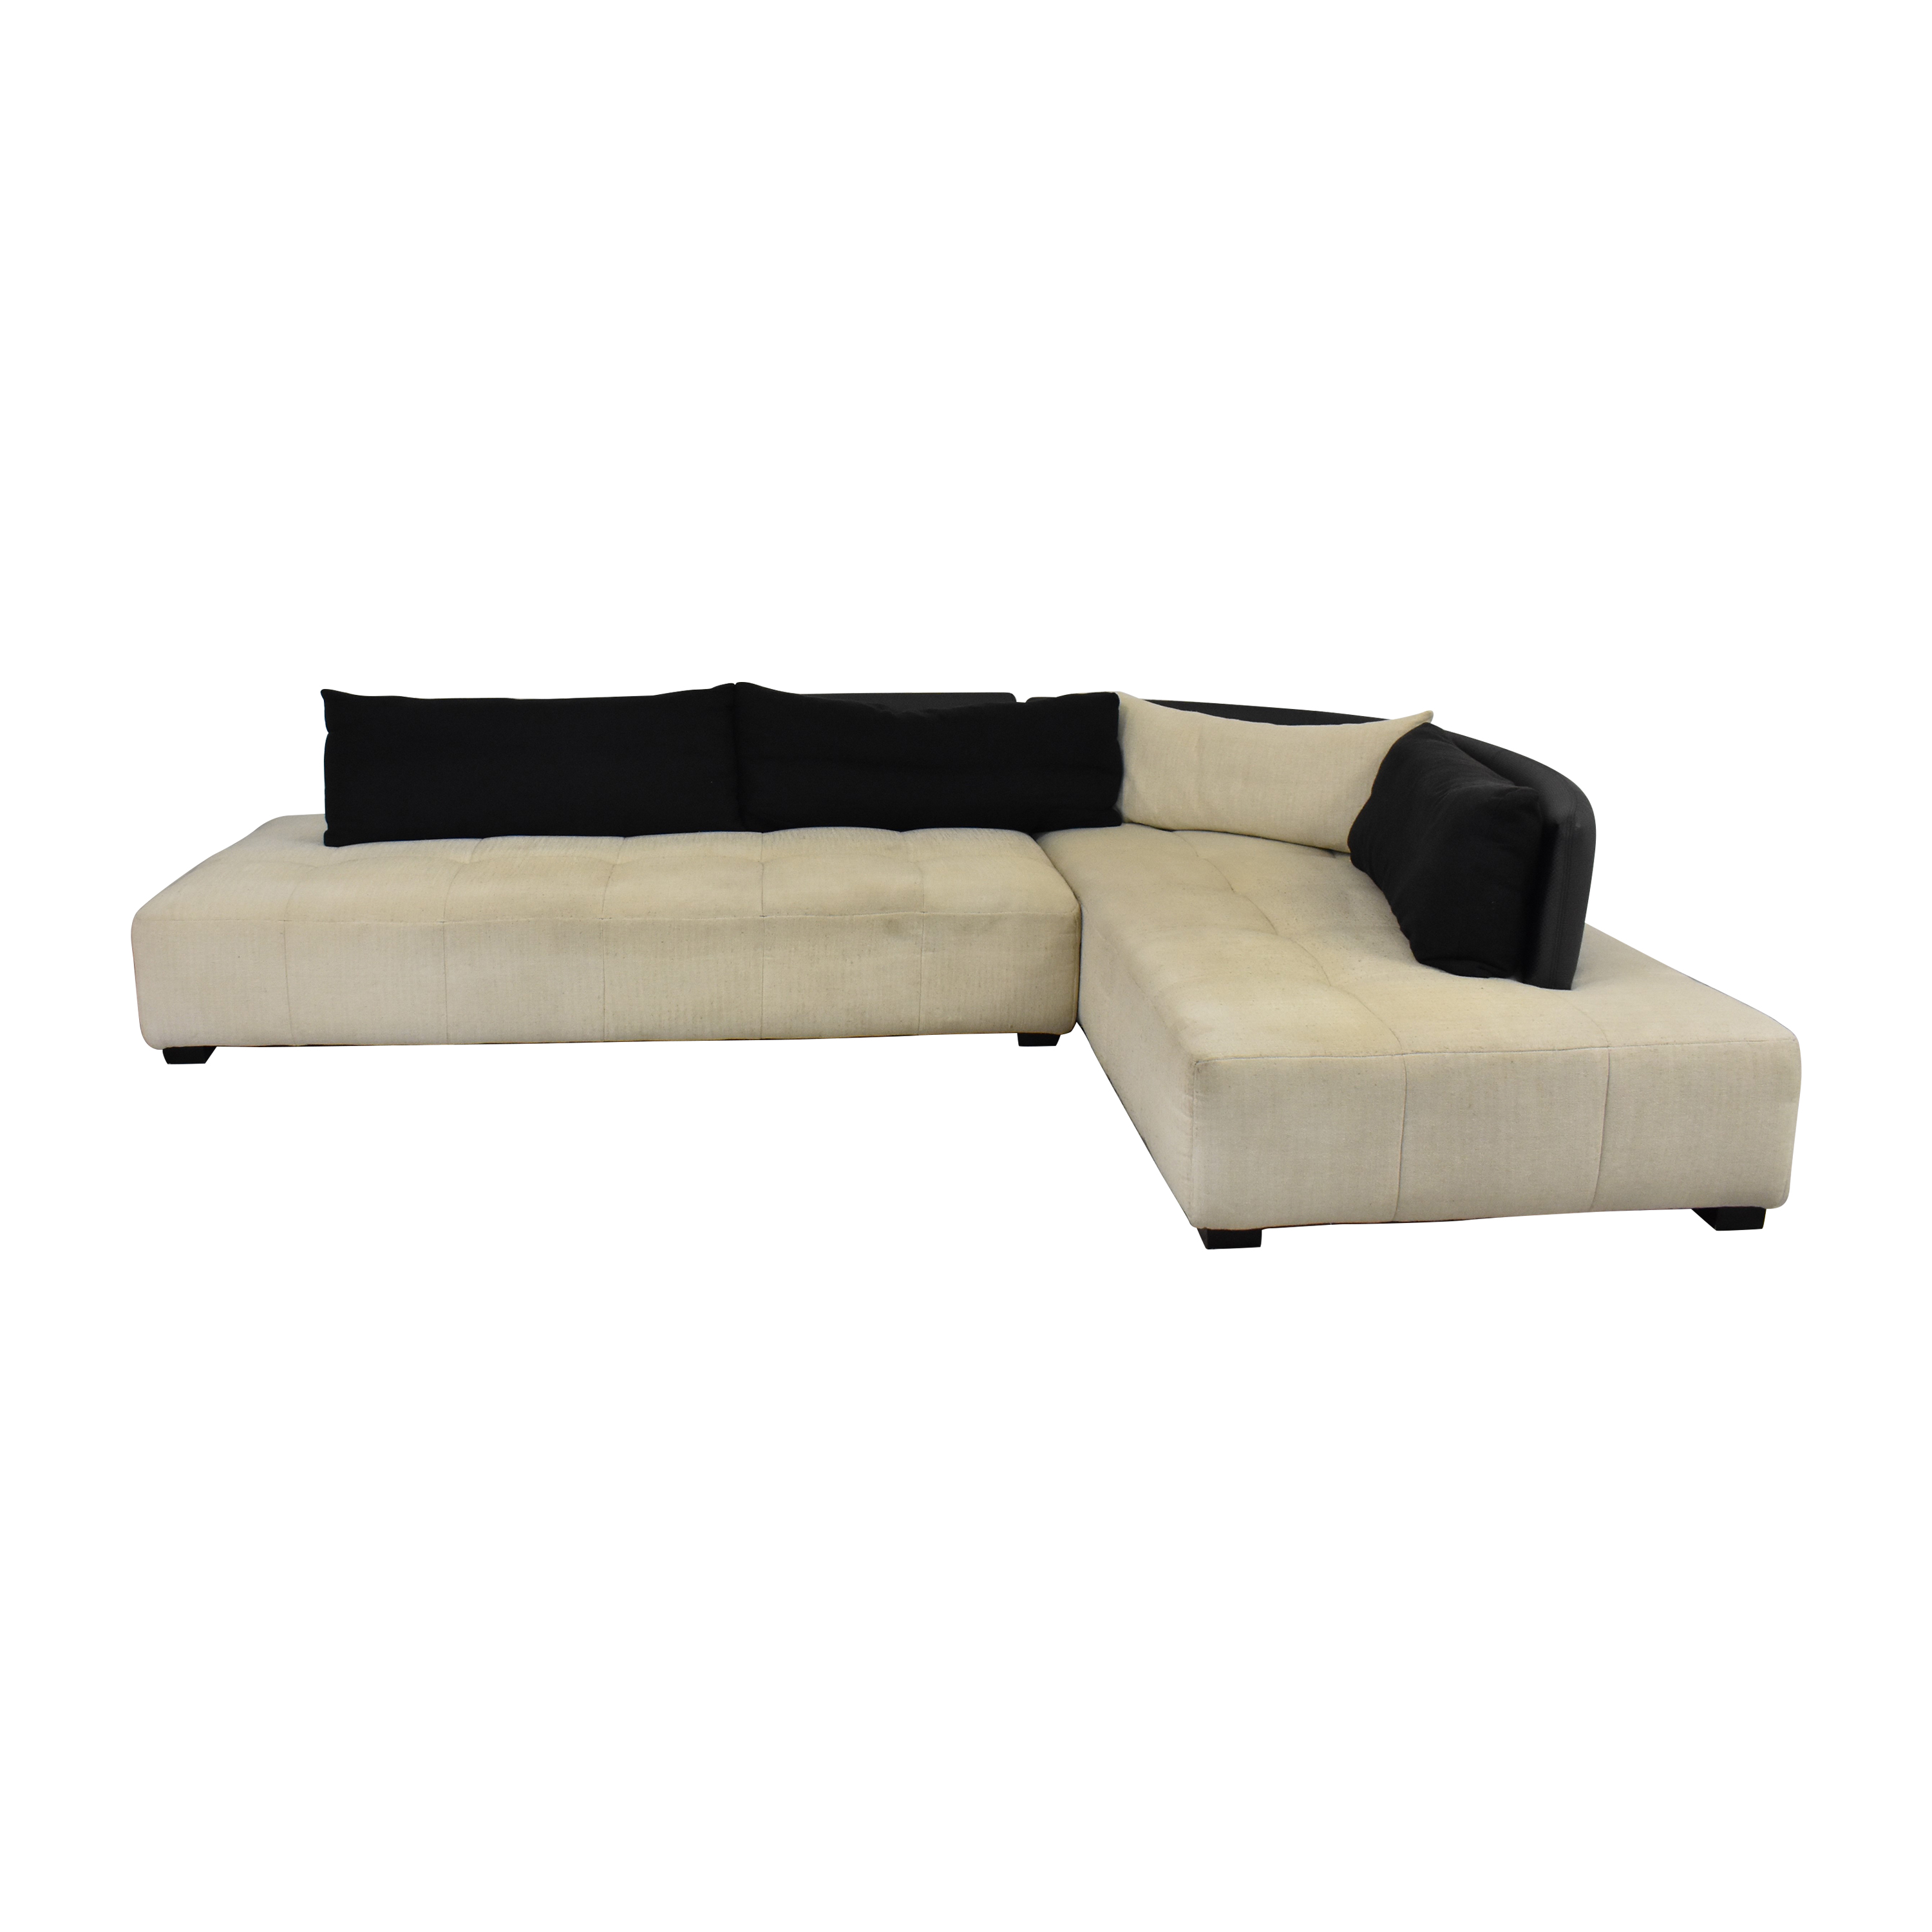 Creative Furniture Creative Furniture Almira Sectional Sofa coupon